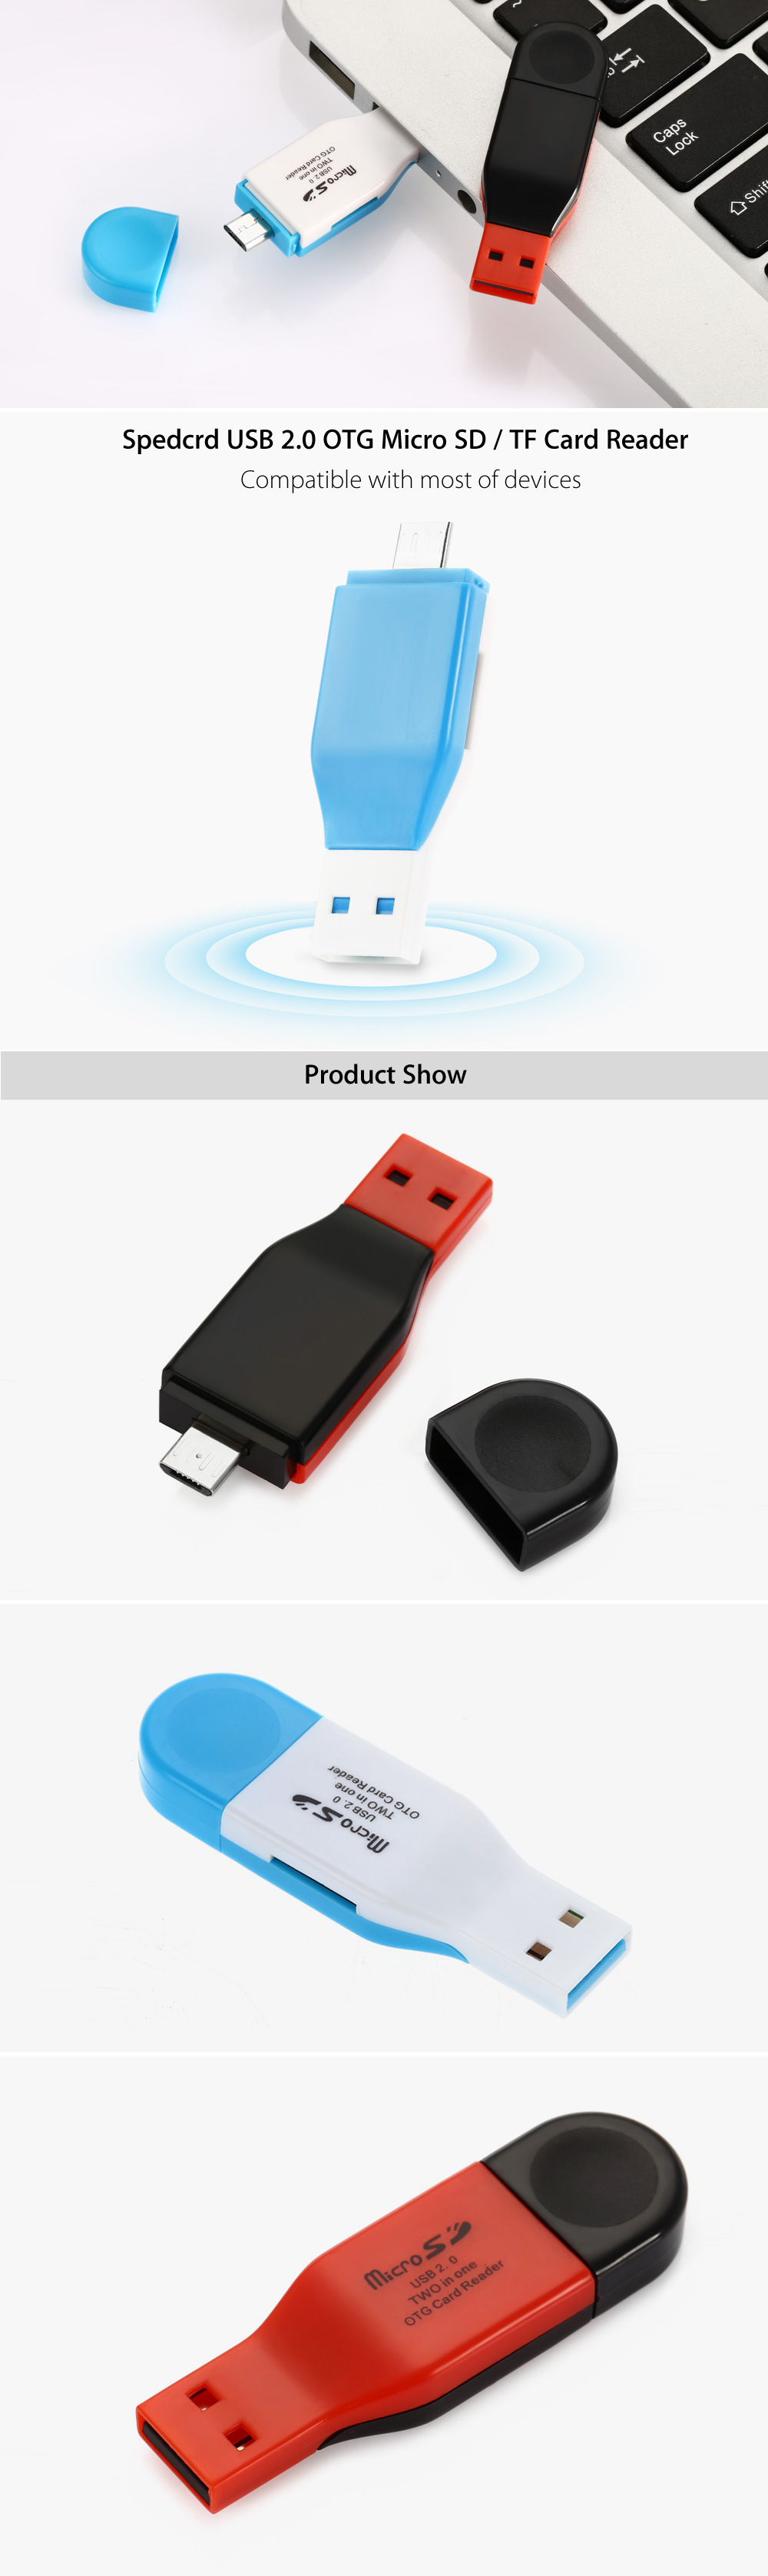 SpedCrd Multi-functional Micro USB to USB 2.0 Card Reader with TF Slot